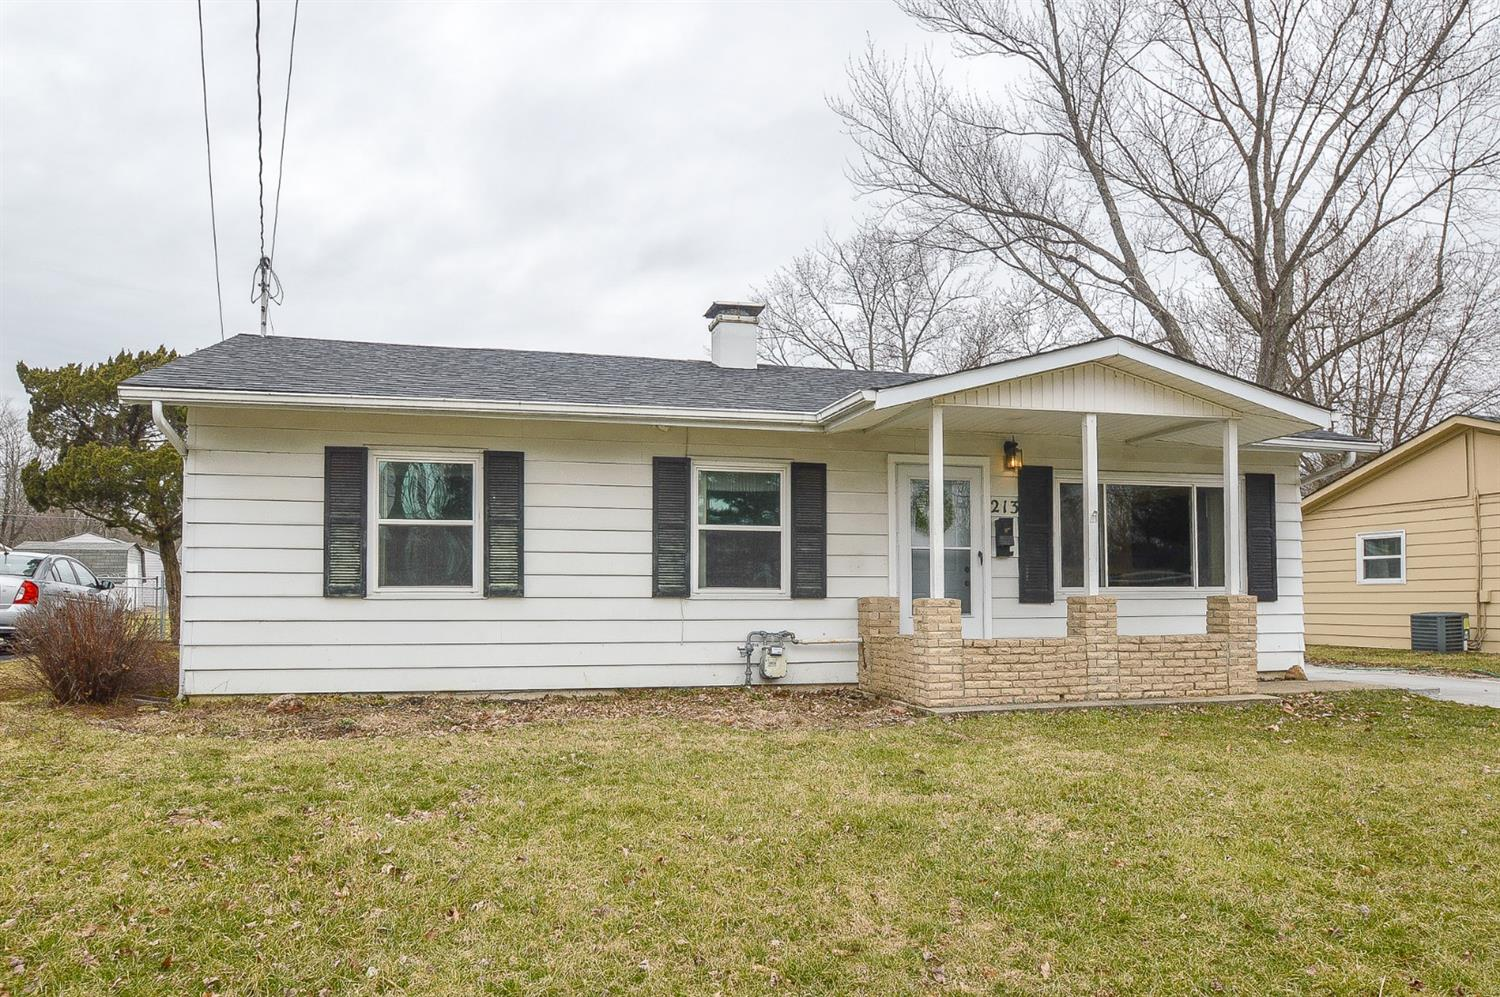 Property for sale at 213 Sioux Drive, Loveland,  Ohio 45140